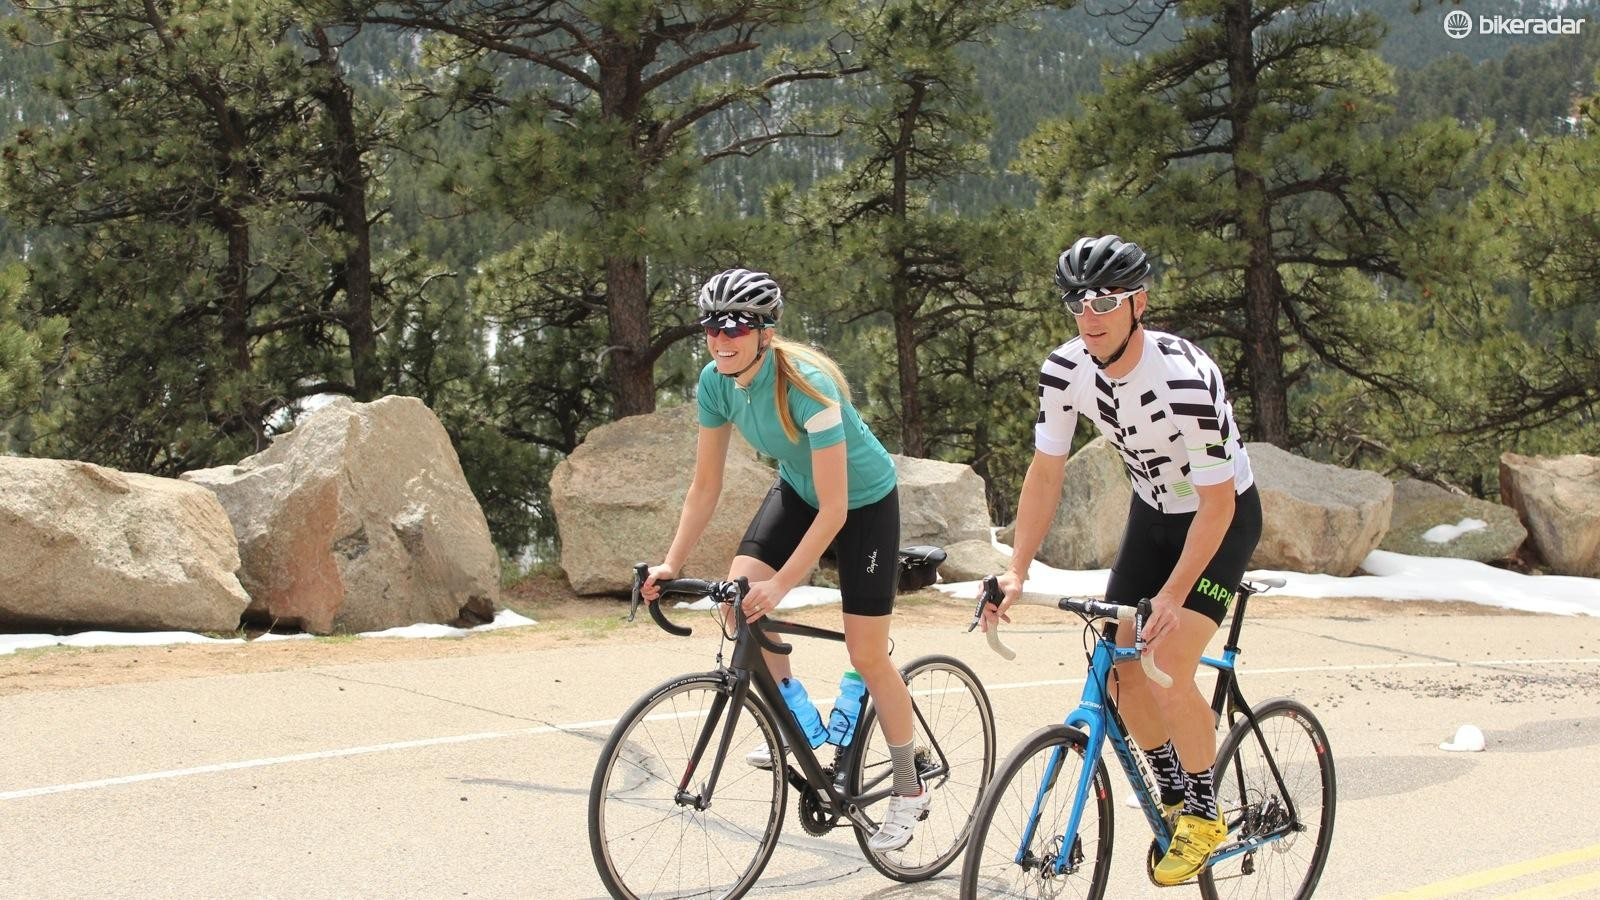 Are you improving or just riding along? A training tool such as a power meter will let you know